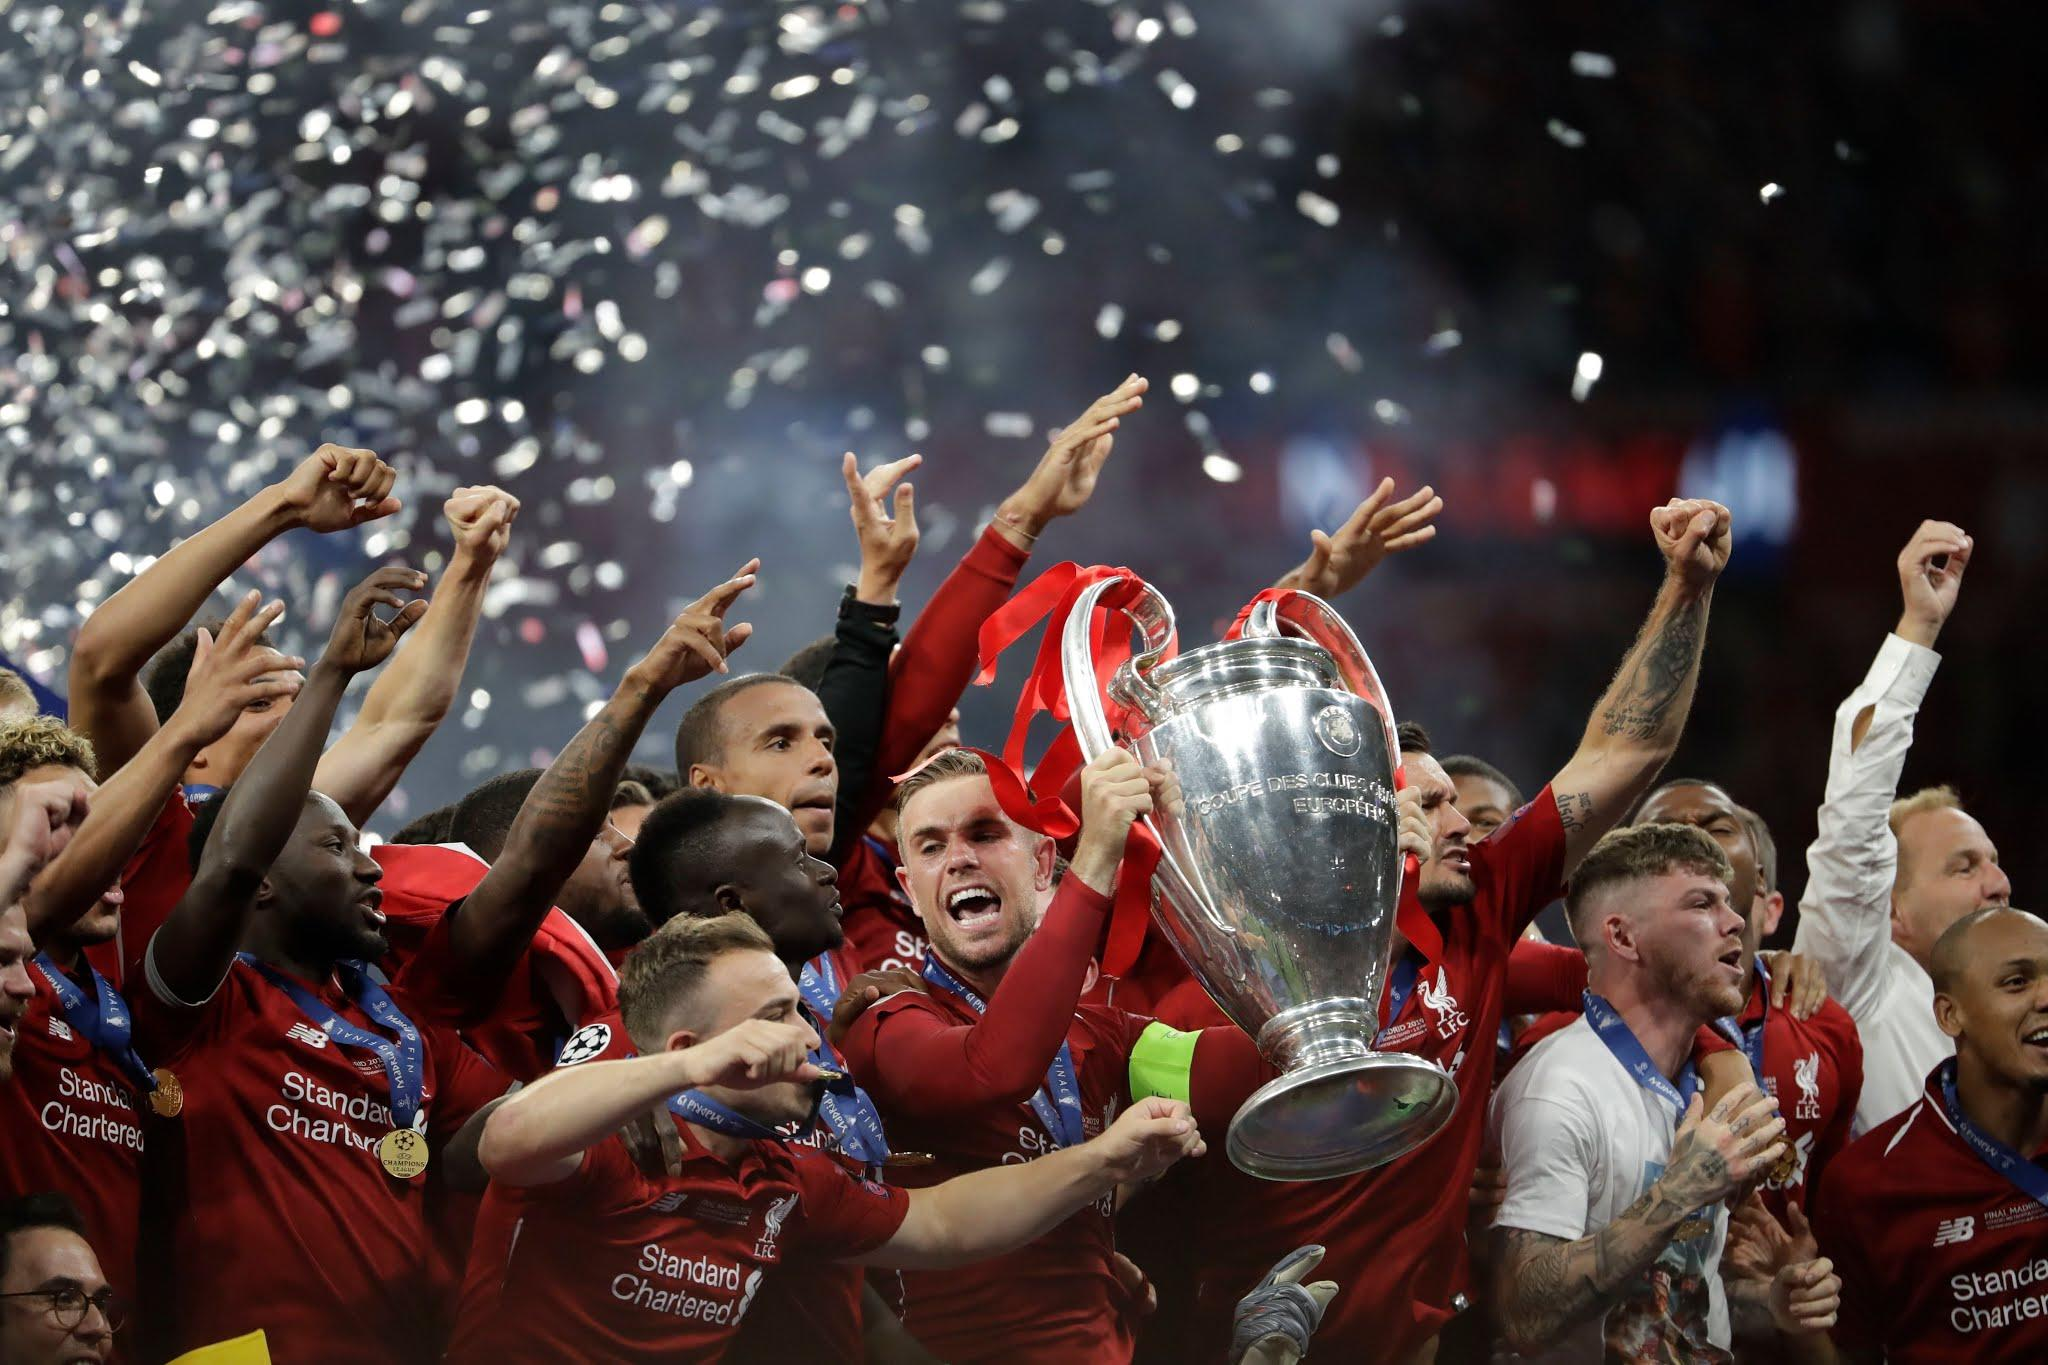 CBS Confirms It Snagged Champions League Soccer Rights ...